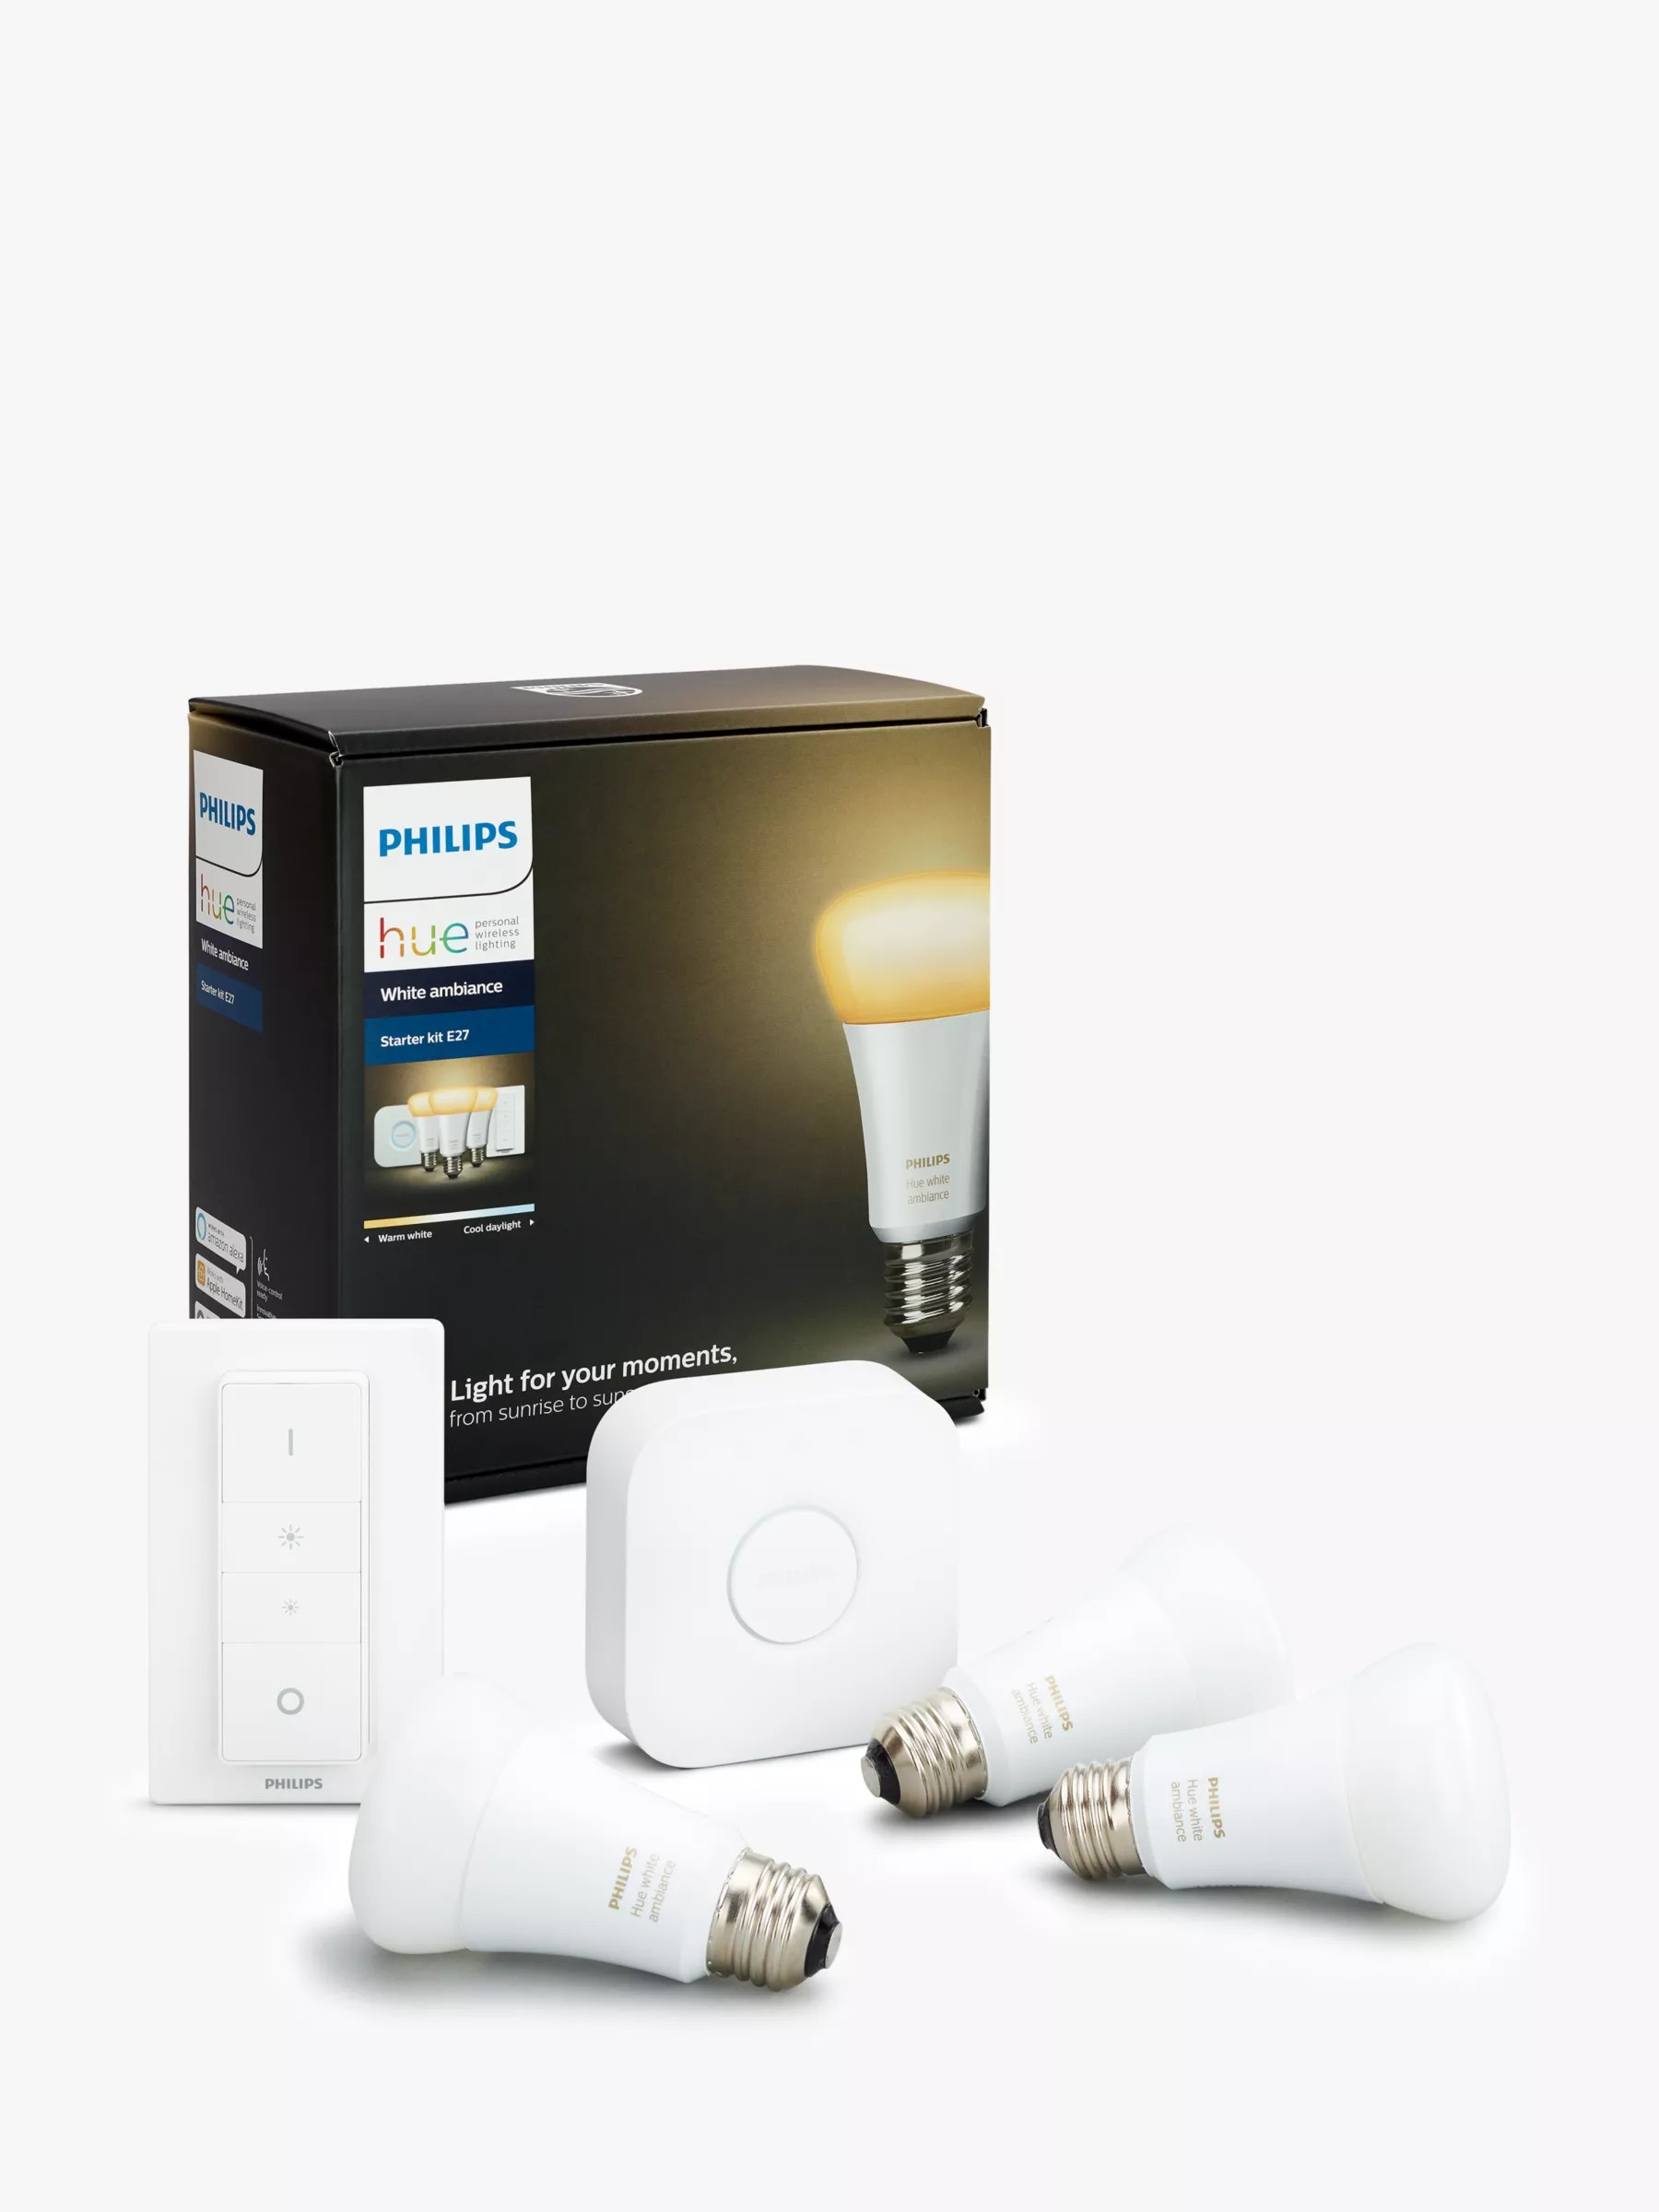 Philips Hue Starter Kit E27 Philips Hue White Ambiance Wireless Lighting Led Starter Kit With